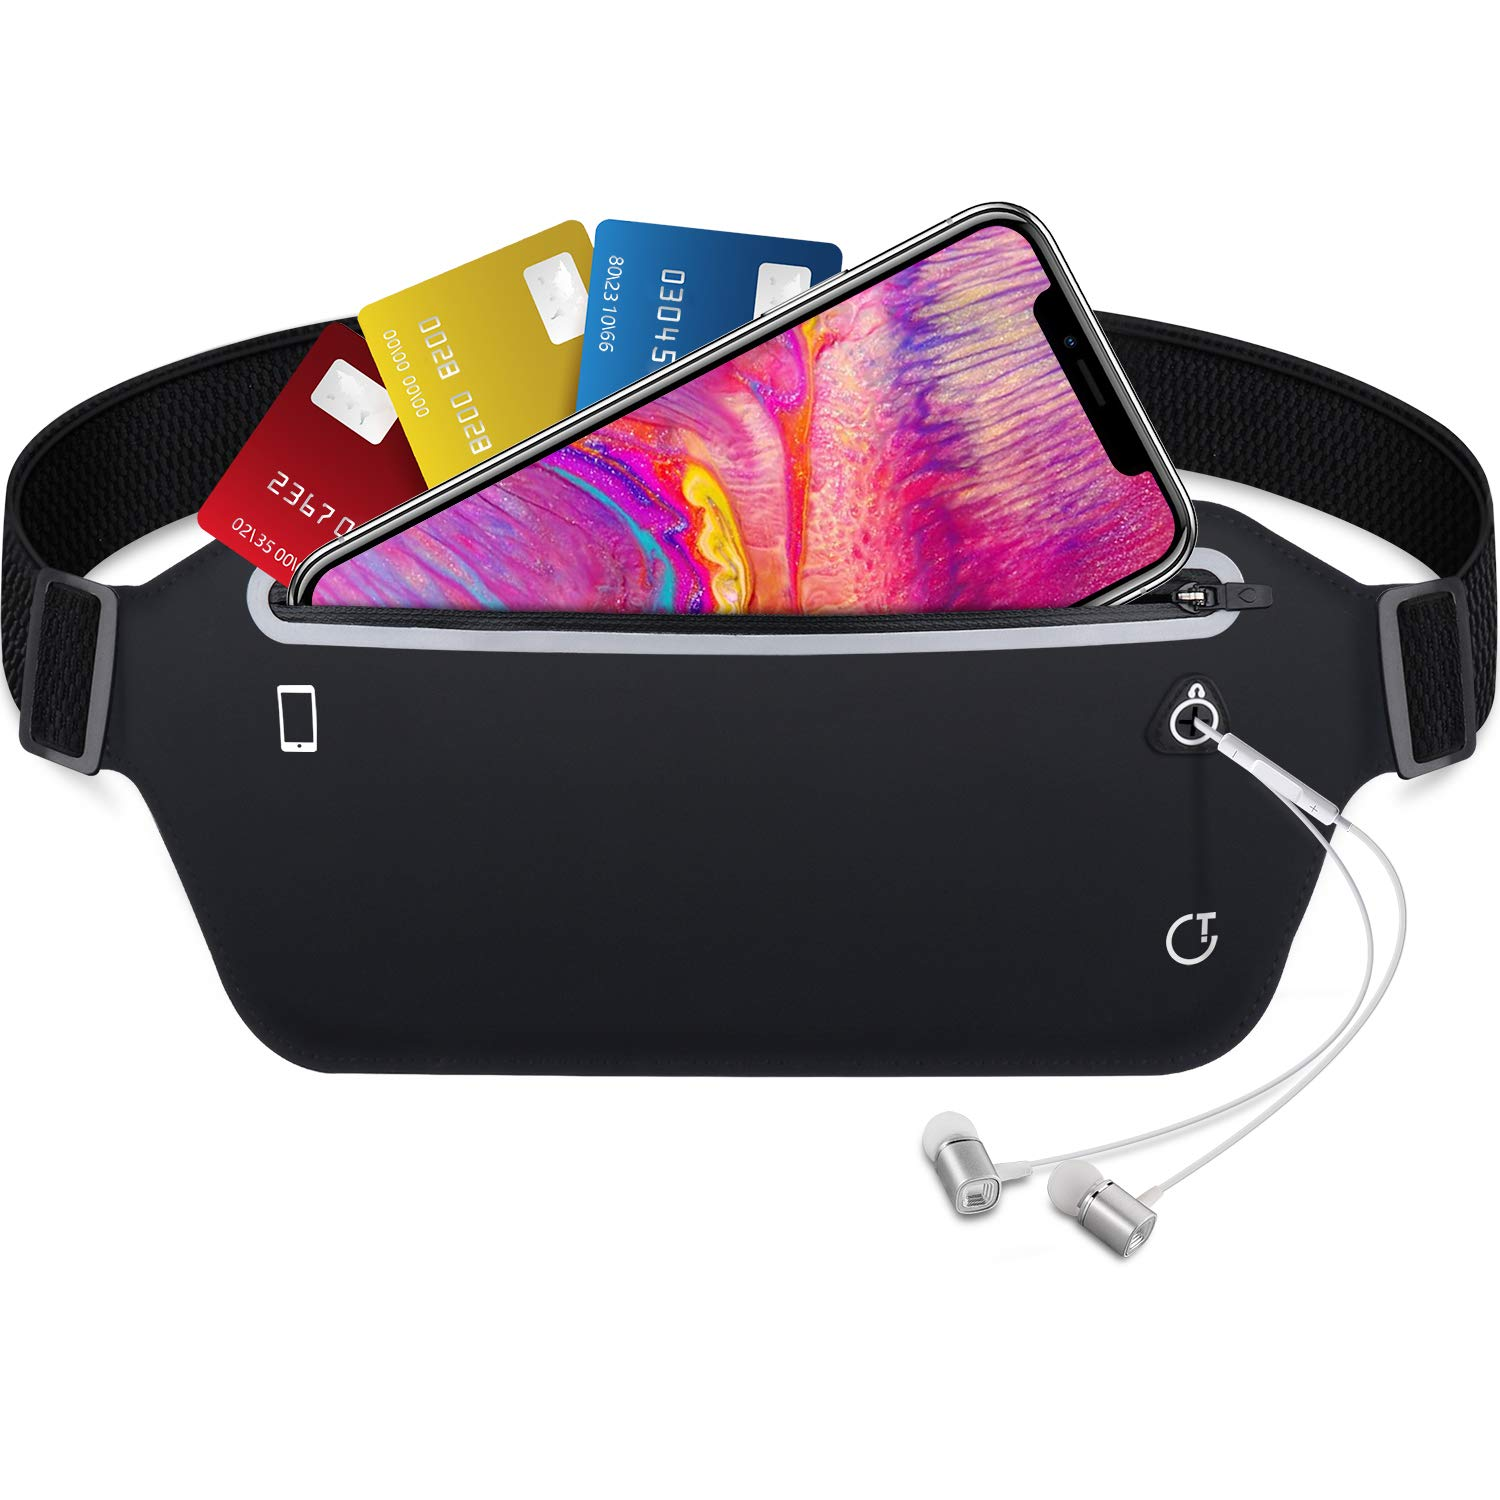 Gritin Running Belt  Waist Pack Fitness Belt W Headphone Hole - Soft Sweat-Proof Fabric and Adjustable Elastic Strap for Waist Curve and Convenient for Running